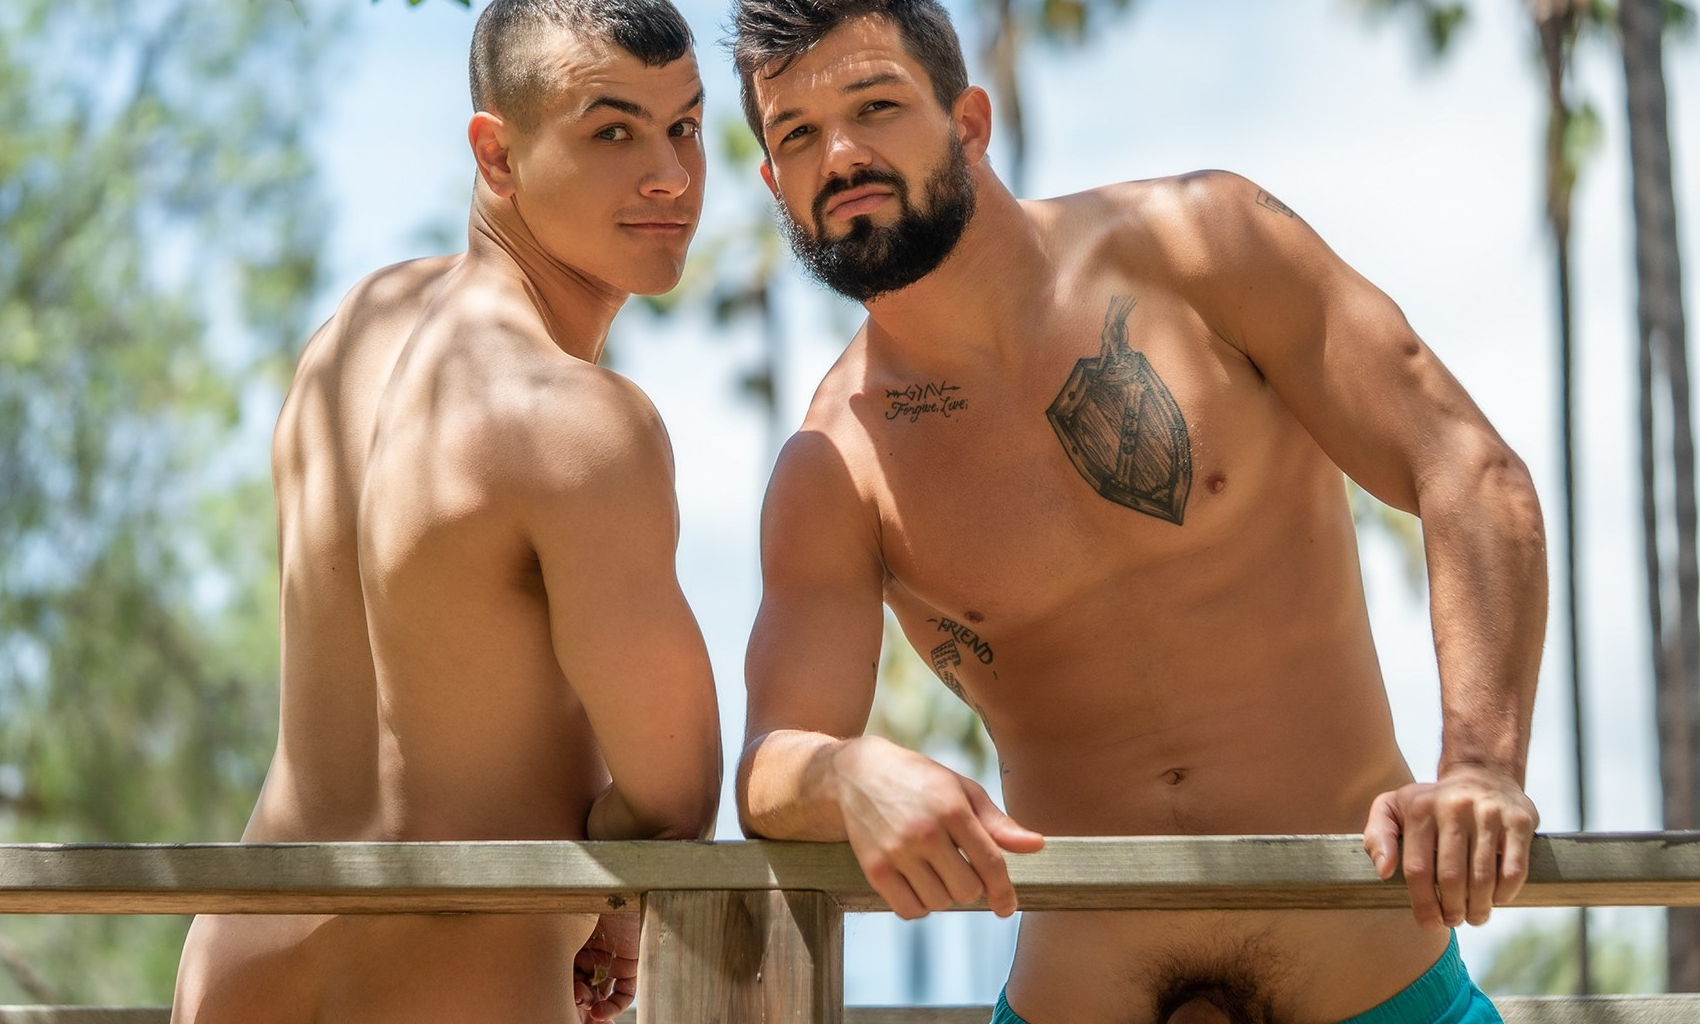 Muscular guys from Sean Cody having sex